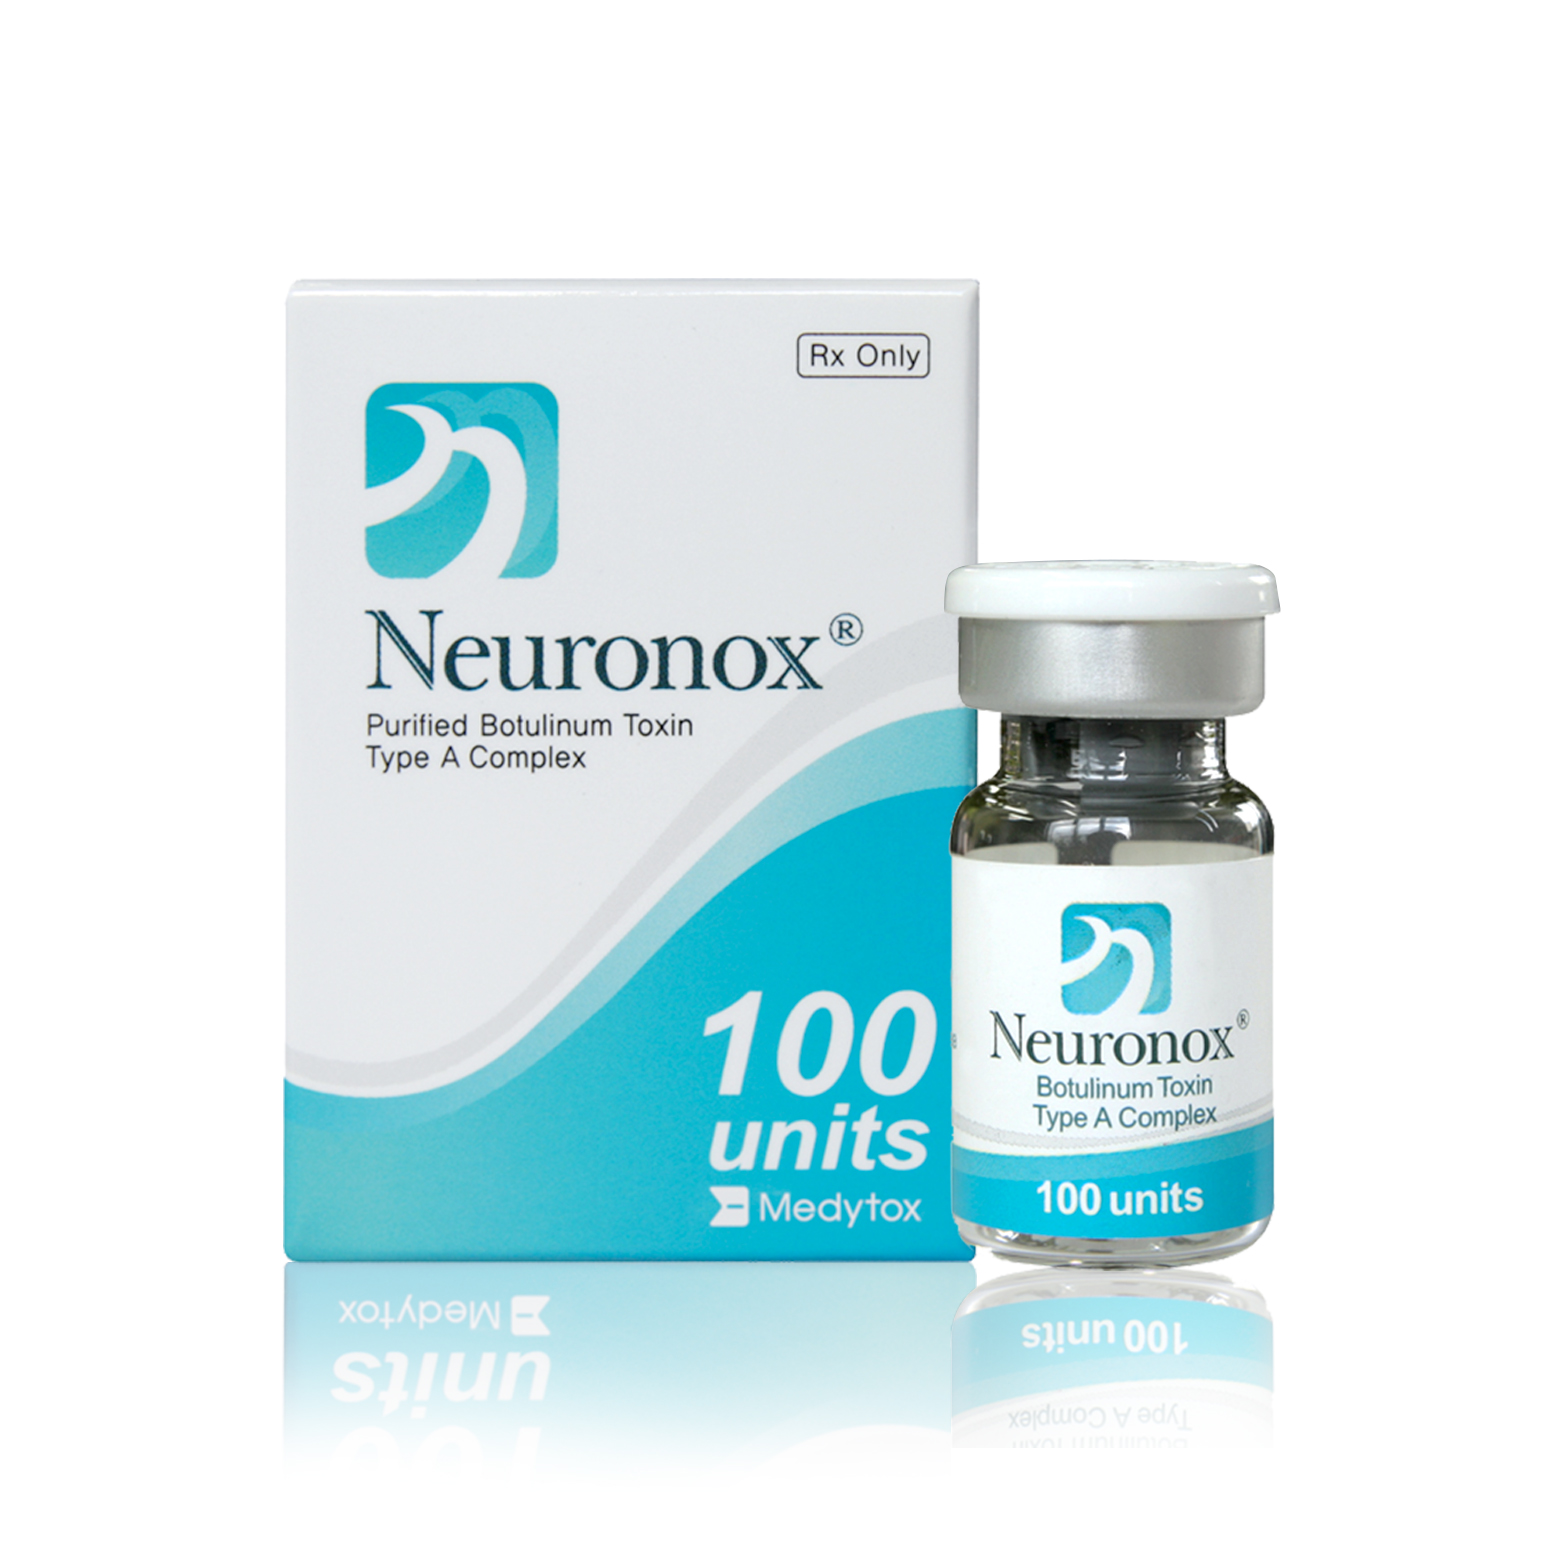 Neuronox 50u Amp 100u Clostridium Botulinum Toxin Injection